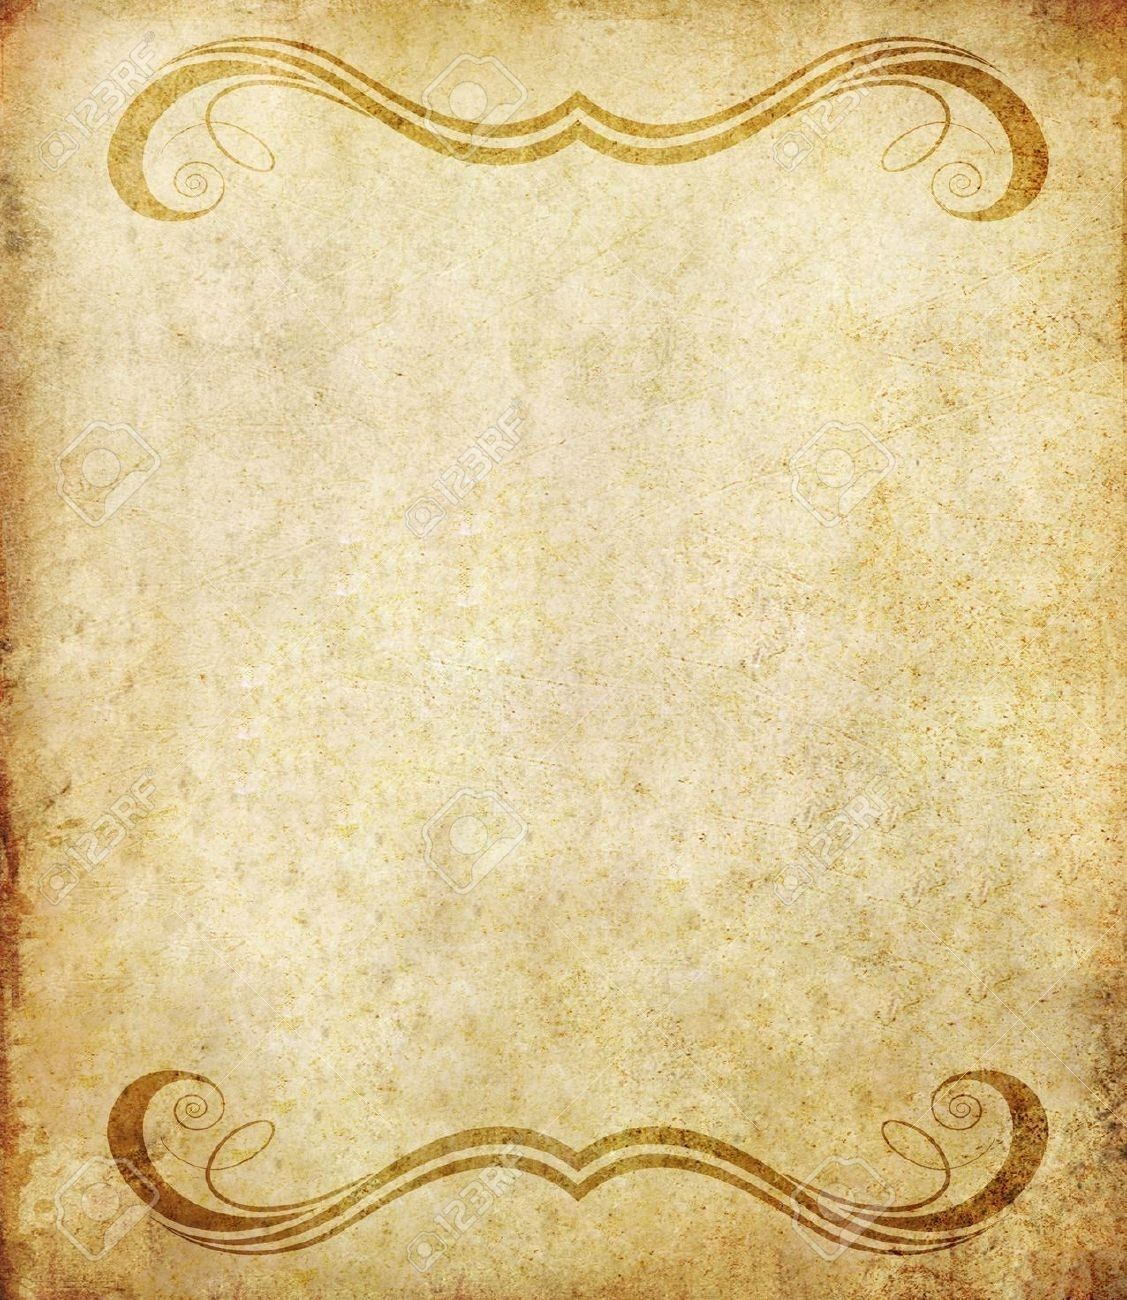 Old Grunge Paper Background With Vintage Style Stock Photo Throughout Vintage Notebook Paper Background22482 Paper Background Grunge Paper Vintage Notebook